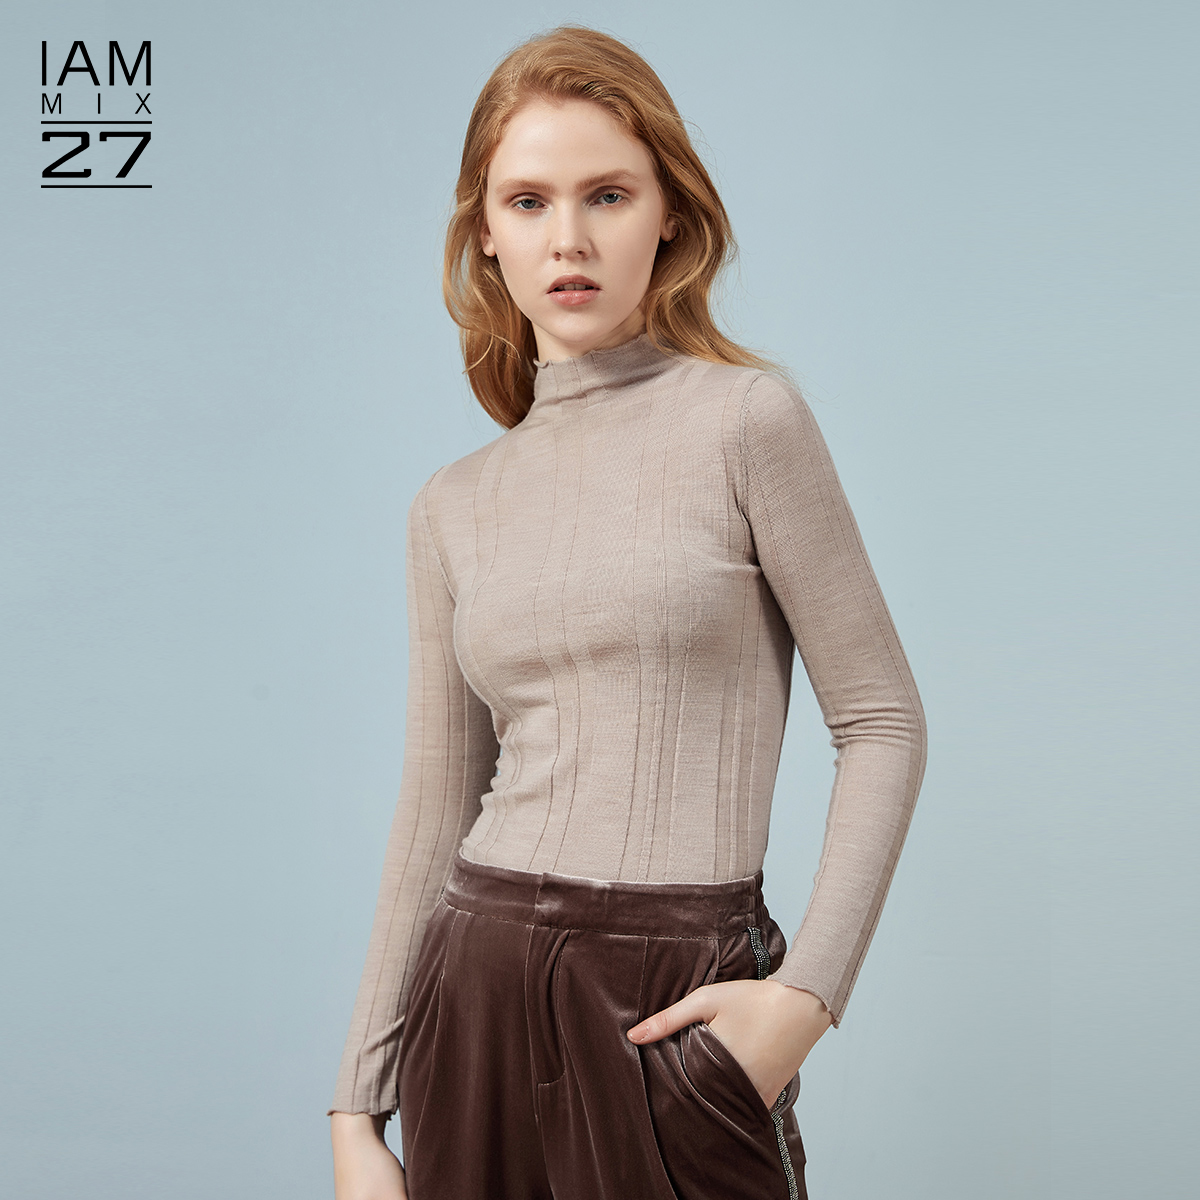 IAmMIX27 semi-high-necked sweater women's autumn/winter body set-up bottoms women's pure color cardigan women's thin